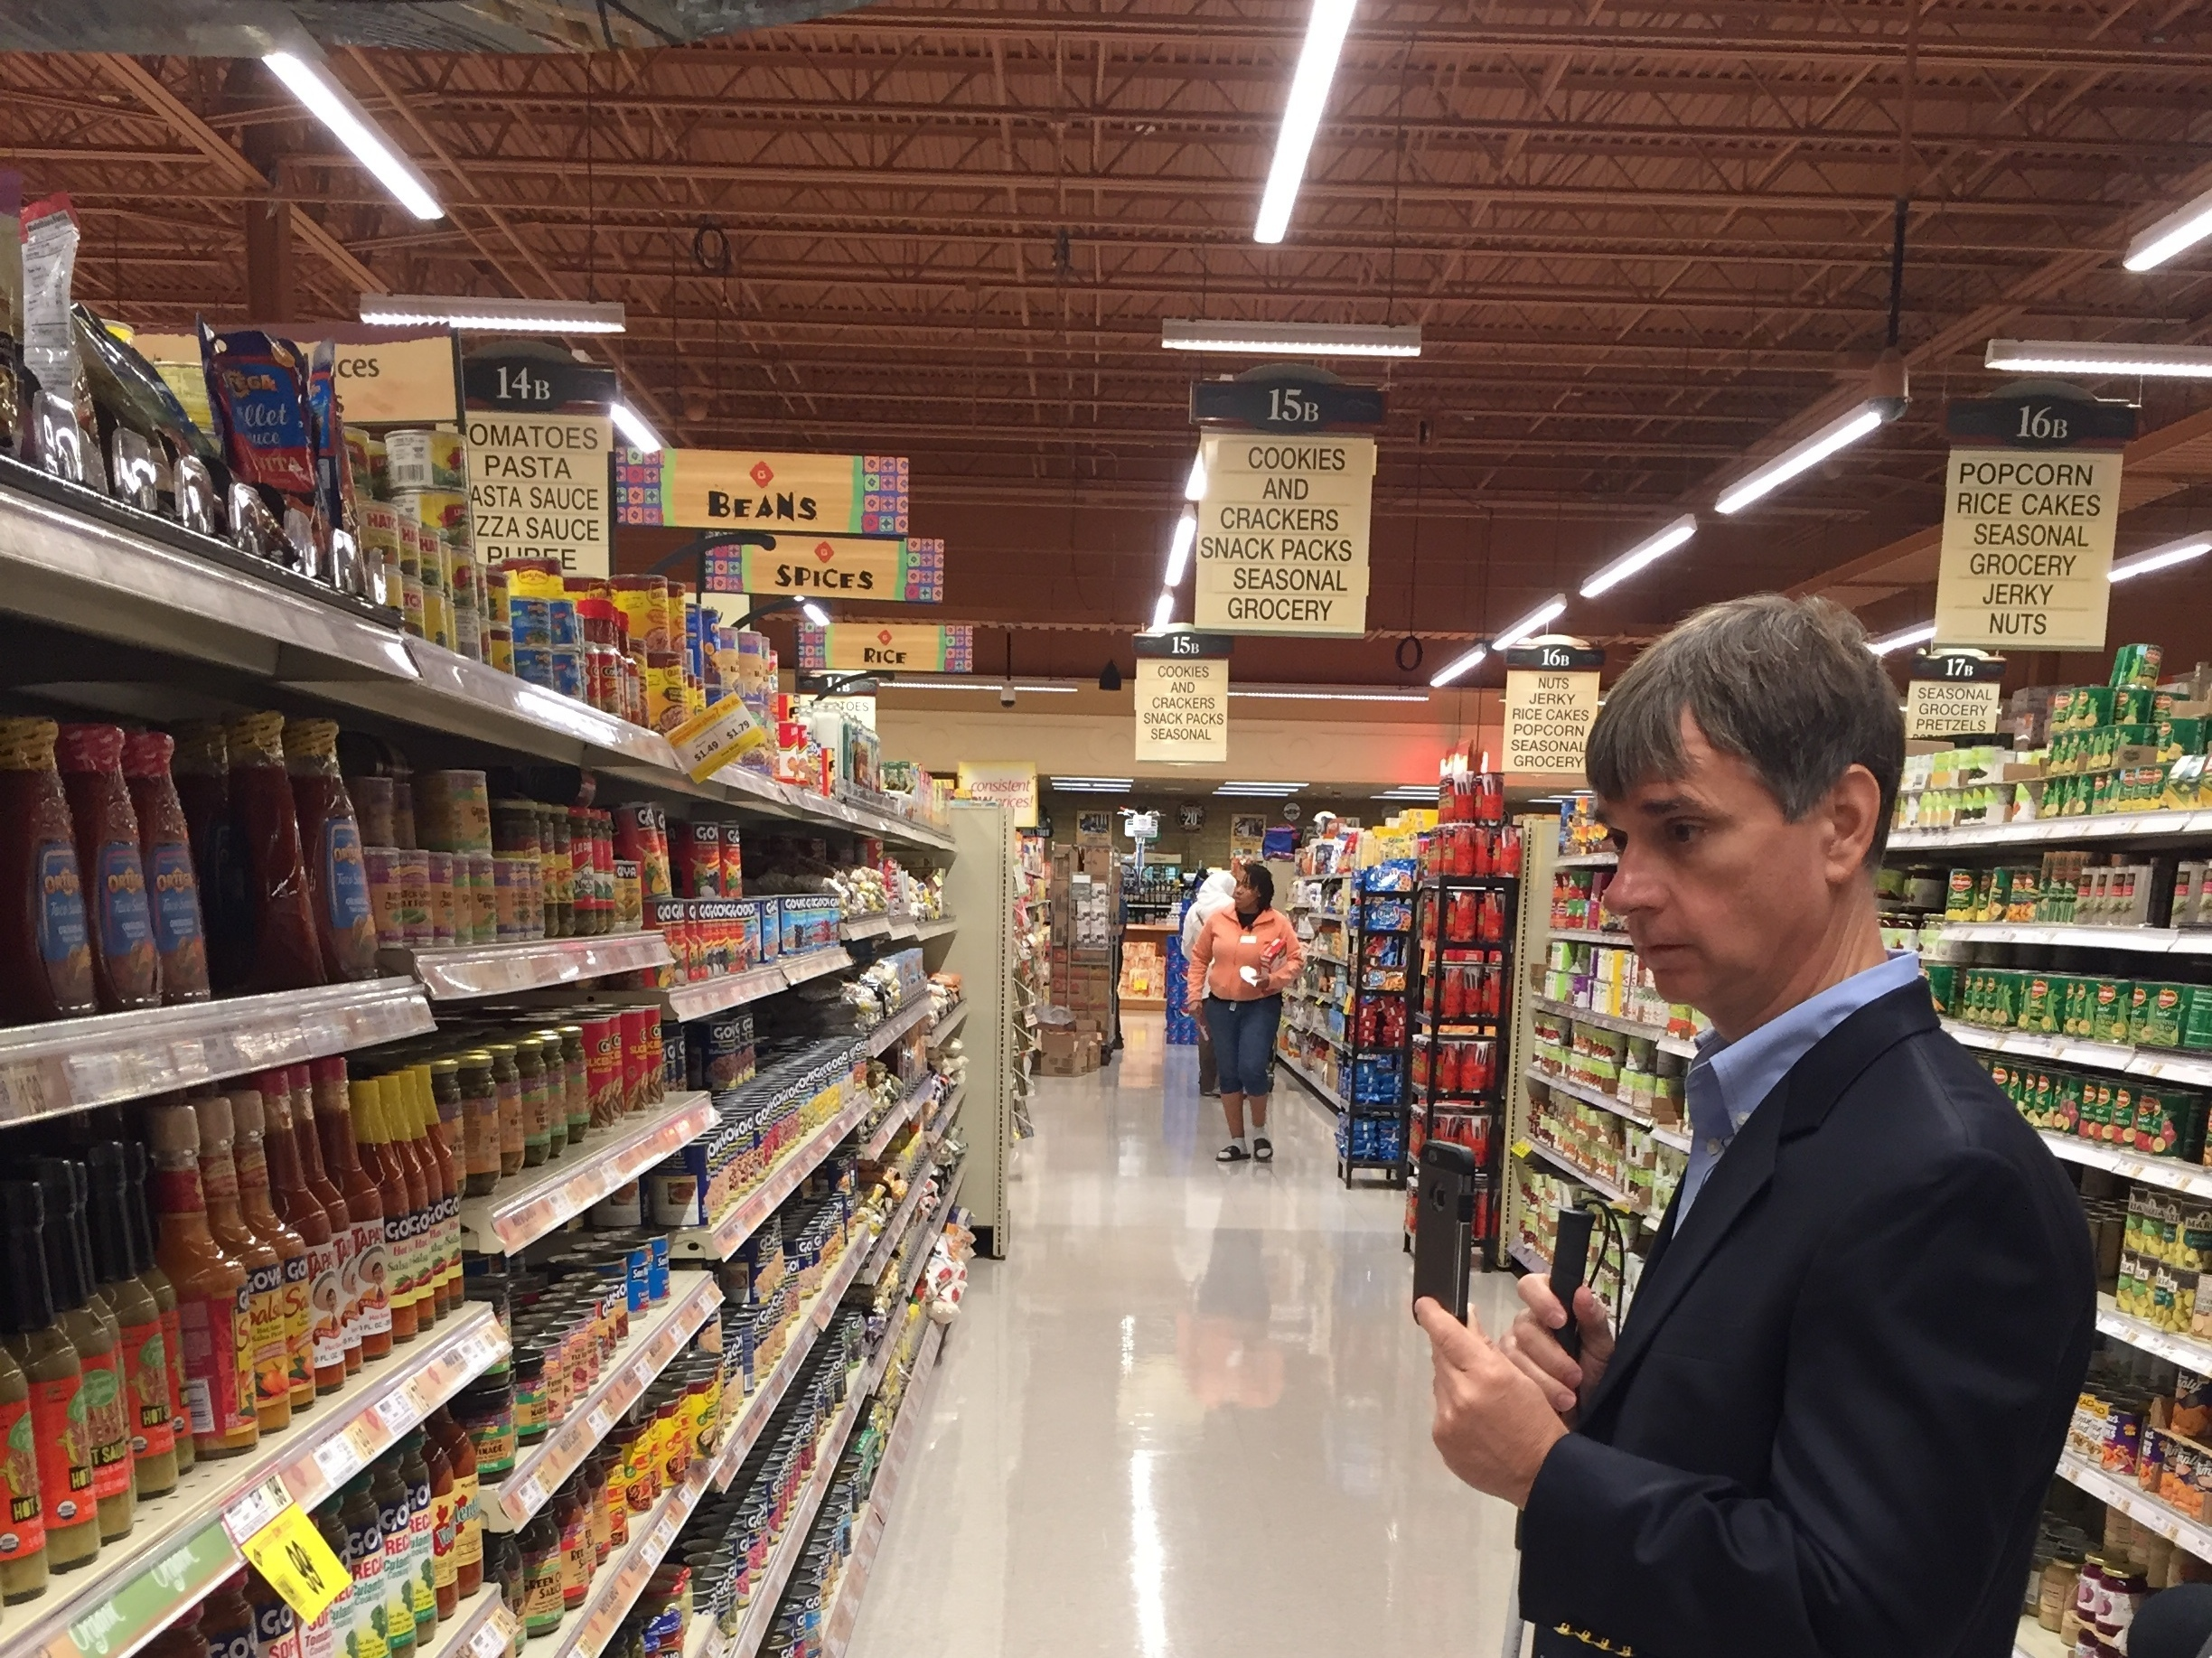 Gary Wagner, a blind Buffalo resident and subscriberto an app that connects him to a shopping assistant, looks for hot sauce at a Wegmans store in Amherst, New York. (Ronald Peralta/WBFO)